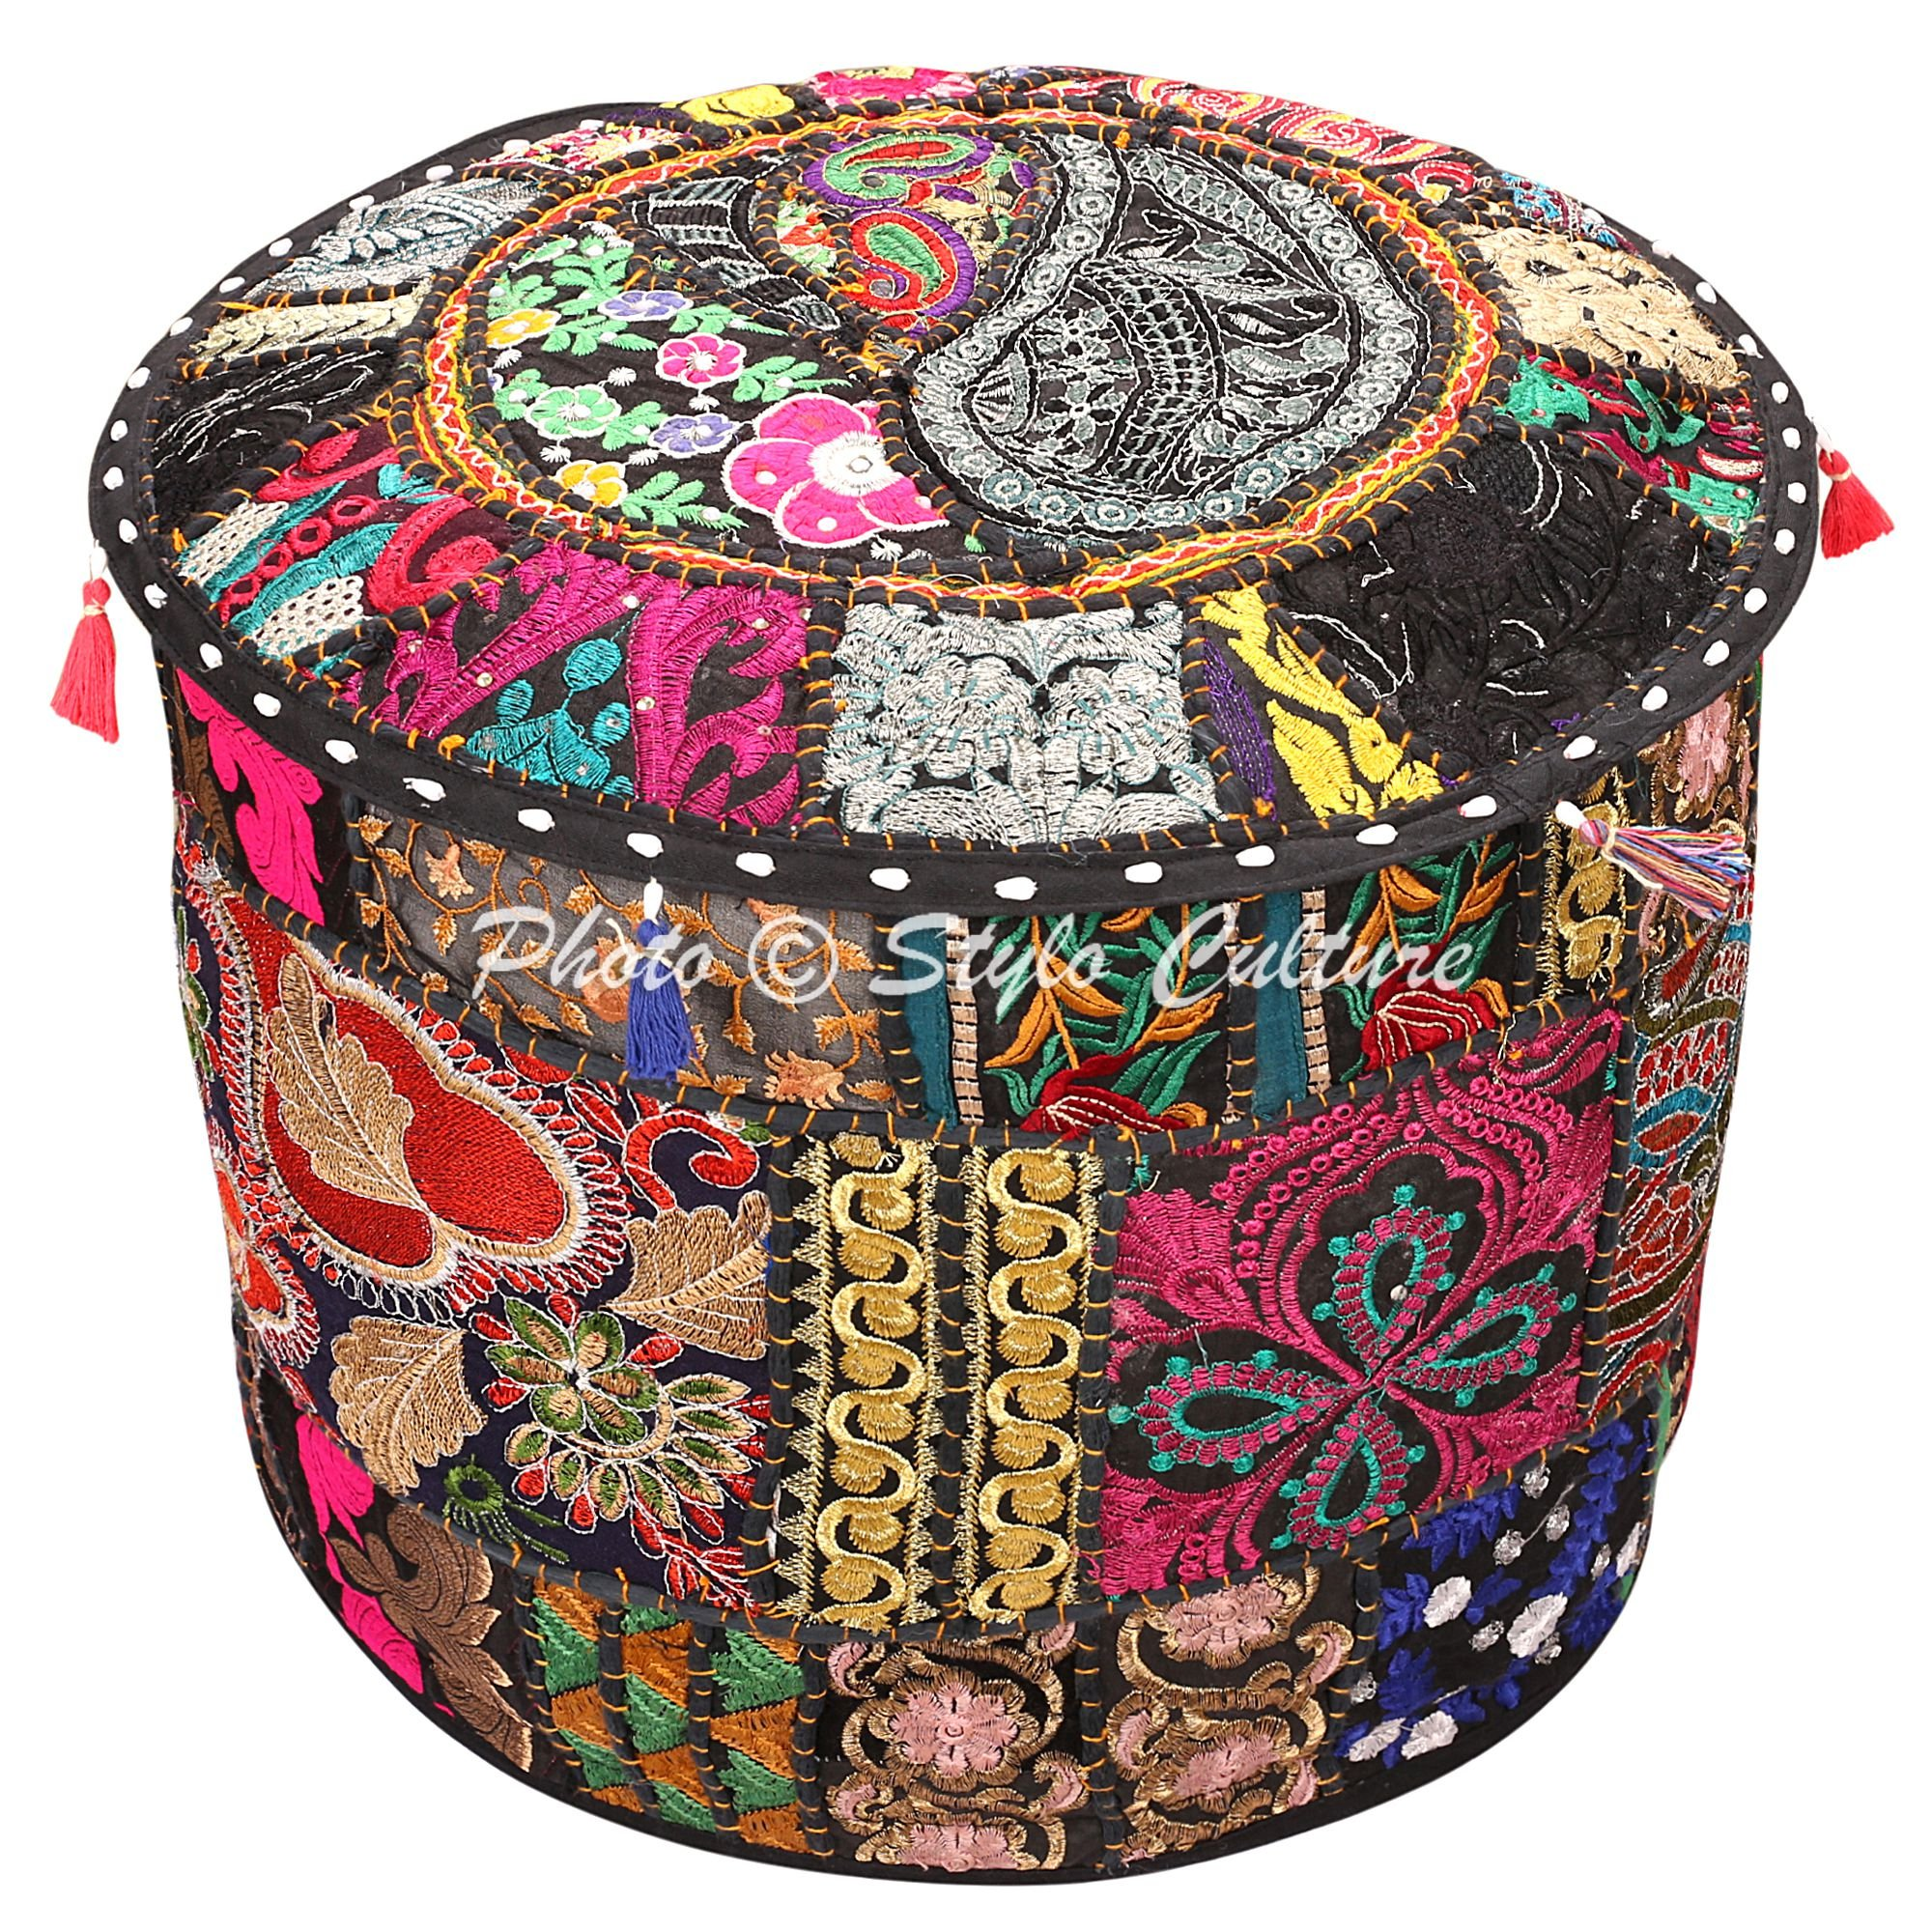 Stylo Culture Decorative Ottoman Pouf Cover Living Room Round Patchwork Embroidered Pouffe Ottoman Cover Black Cotton Floral Traditional Furniture Footstool Seat Puff Cover (16x16x13) by Stylo Culture